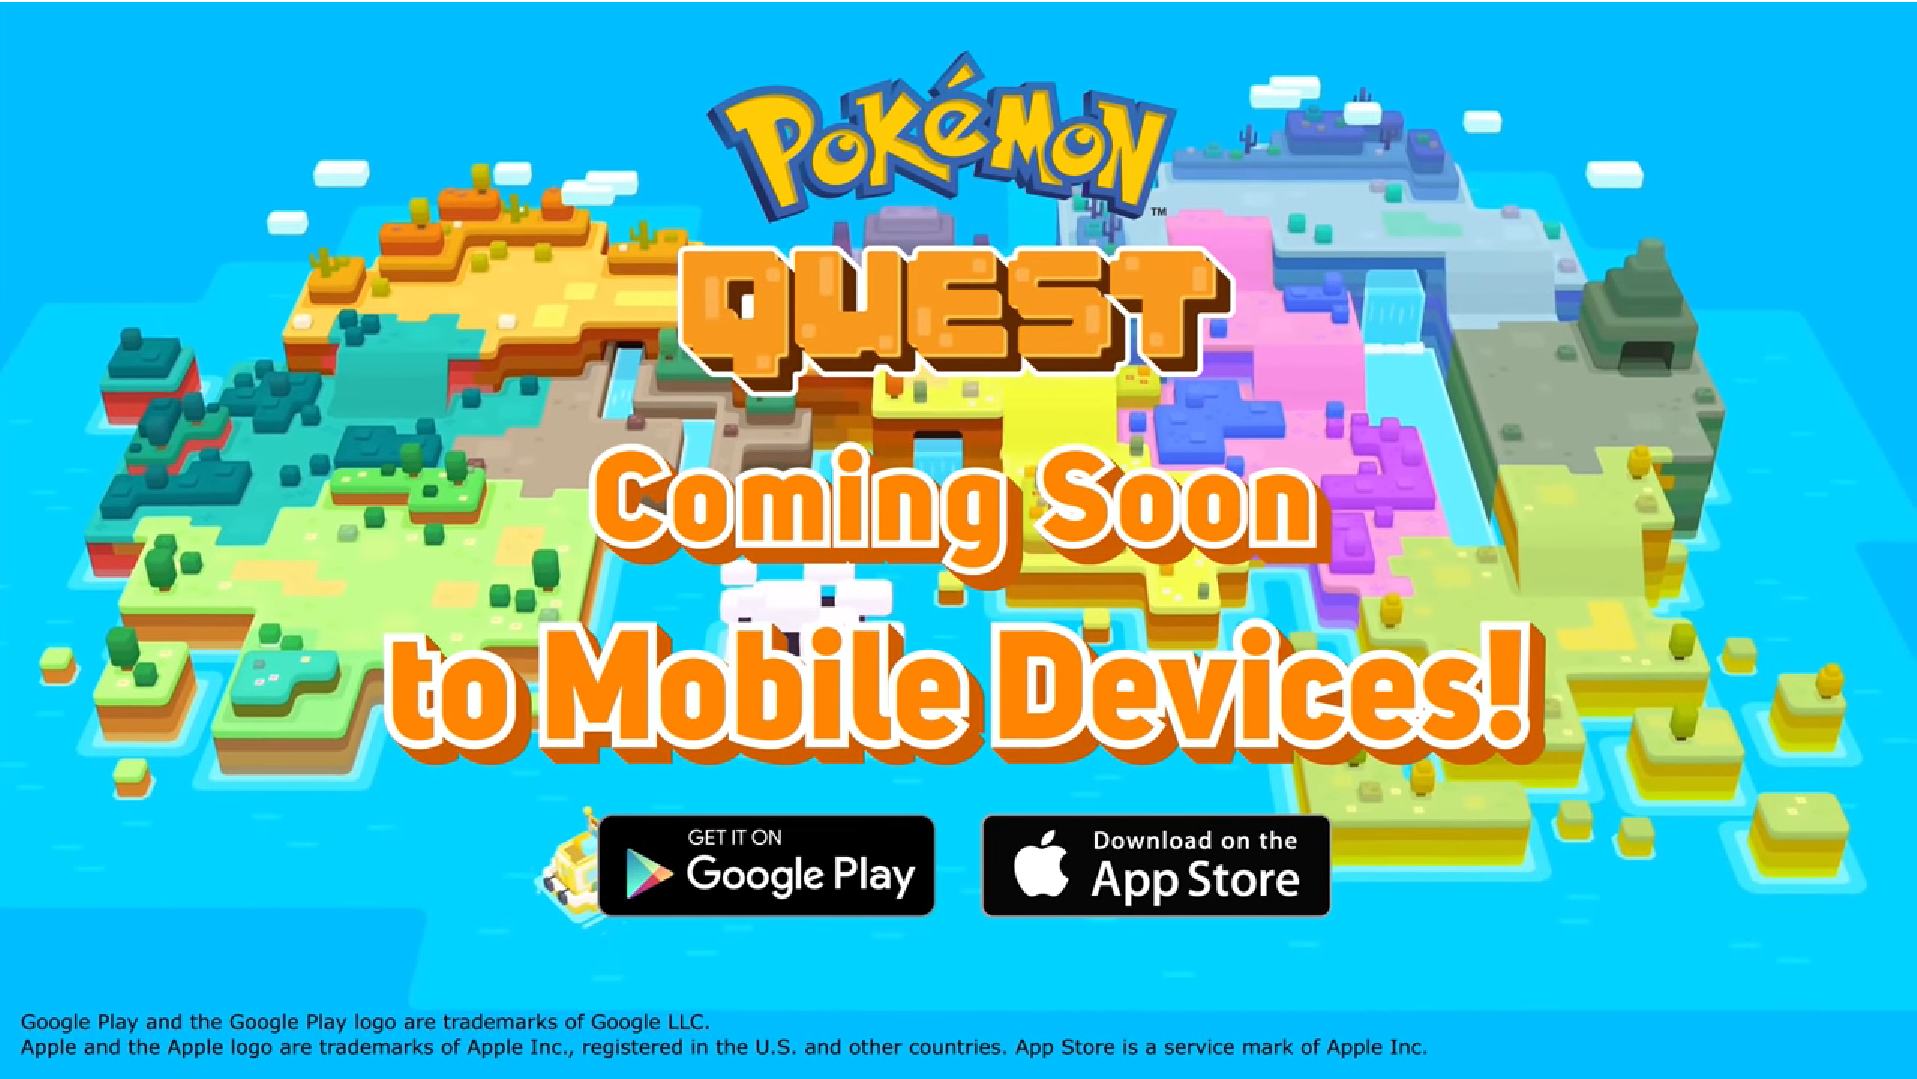 Pokemon Quest On Mobile